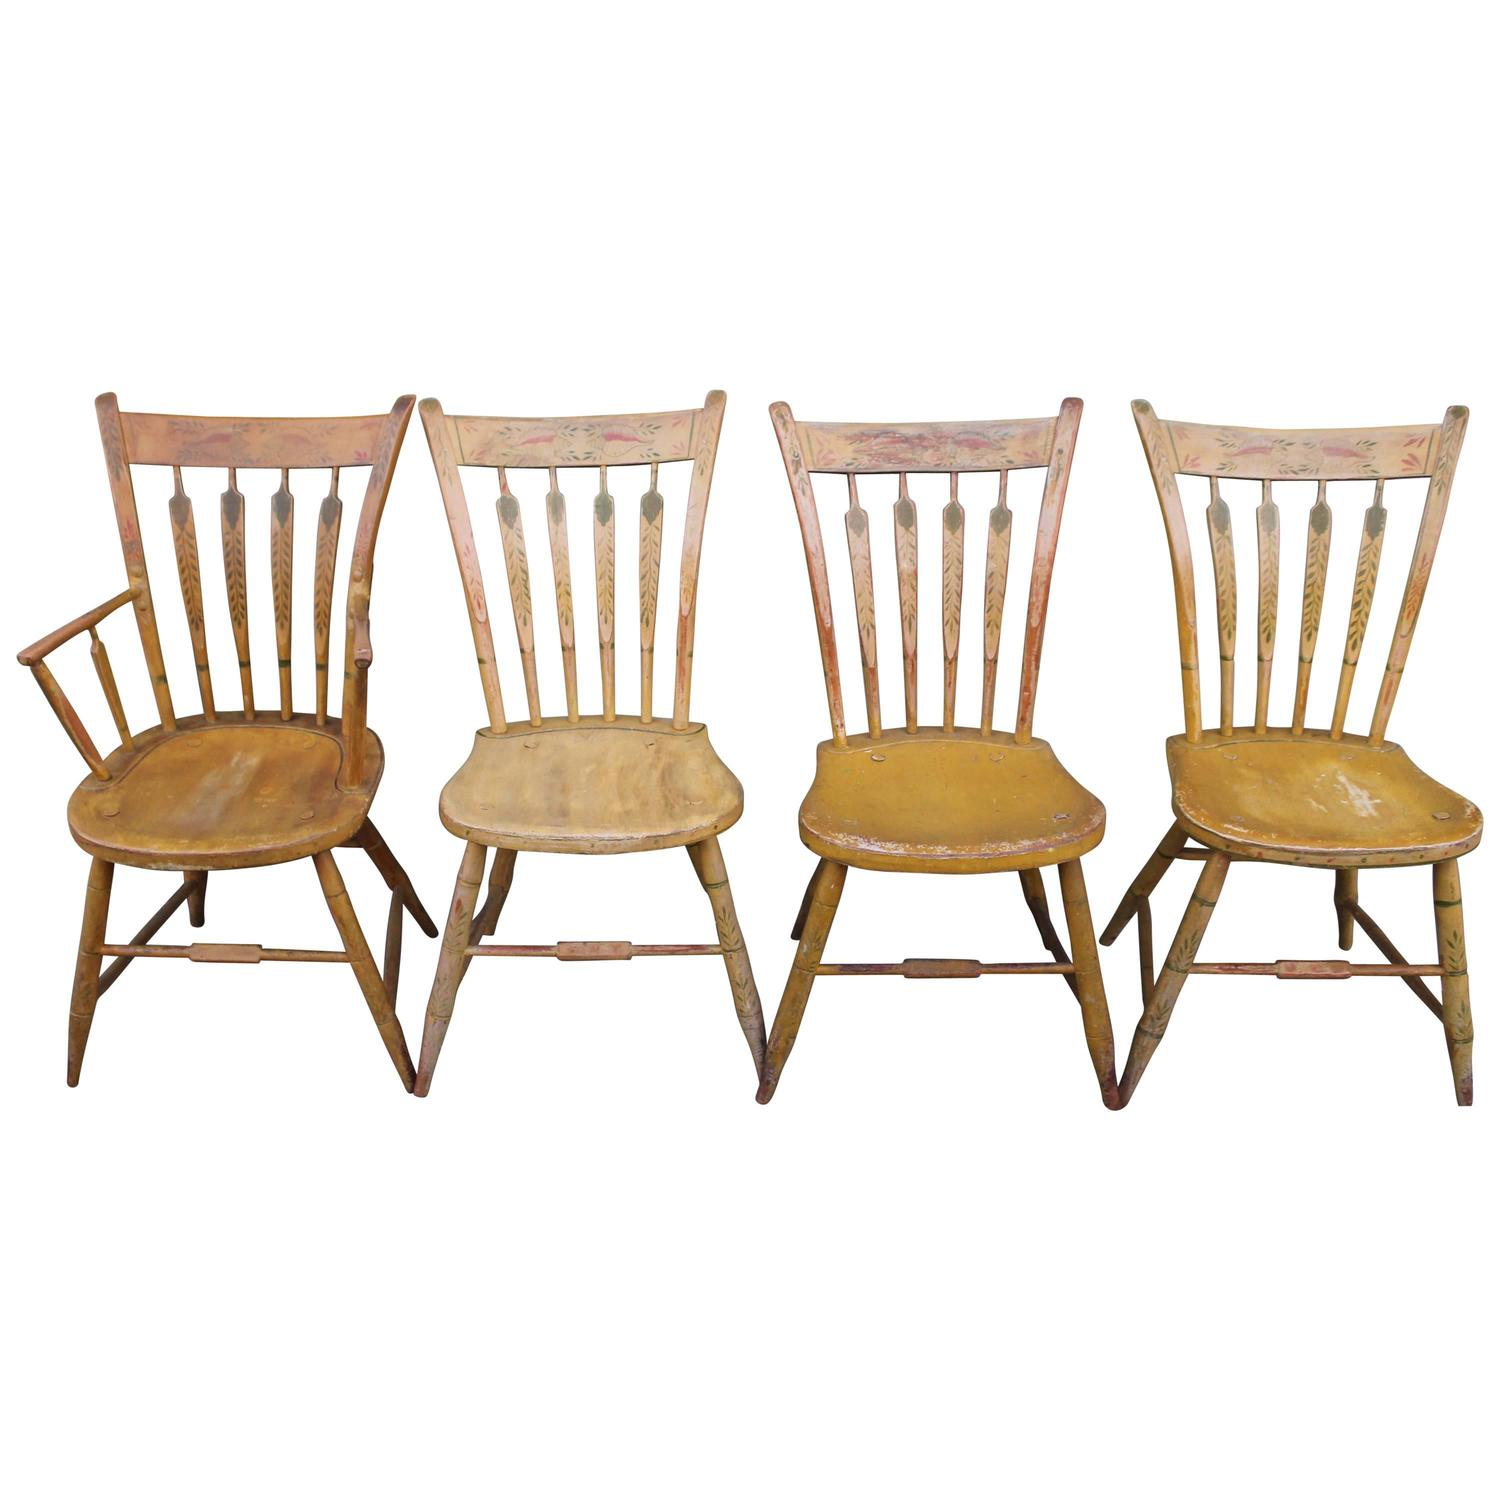 Set Of Four 19th Century Mustard Original Painted Arrow Back Chairs At  1stdibs